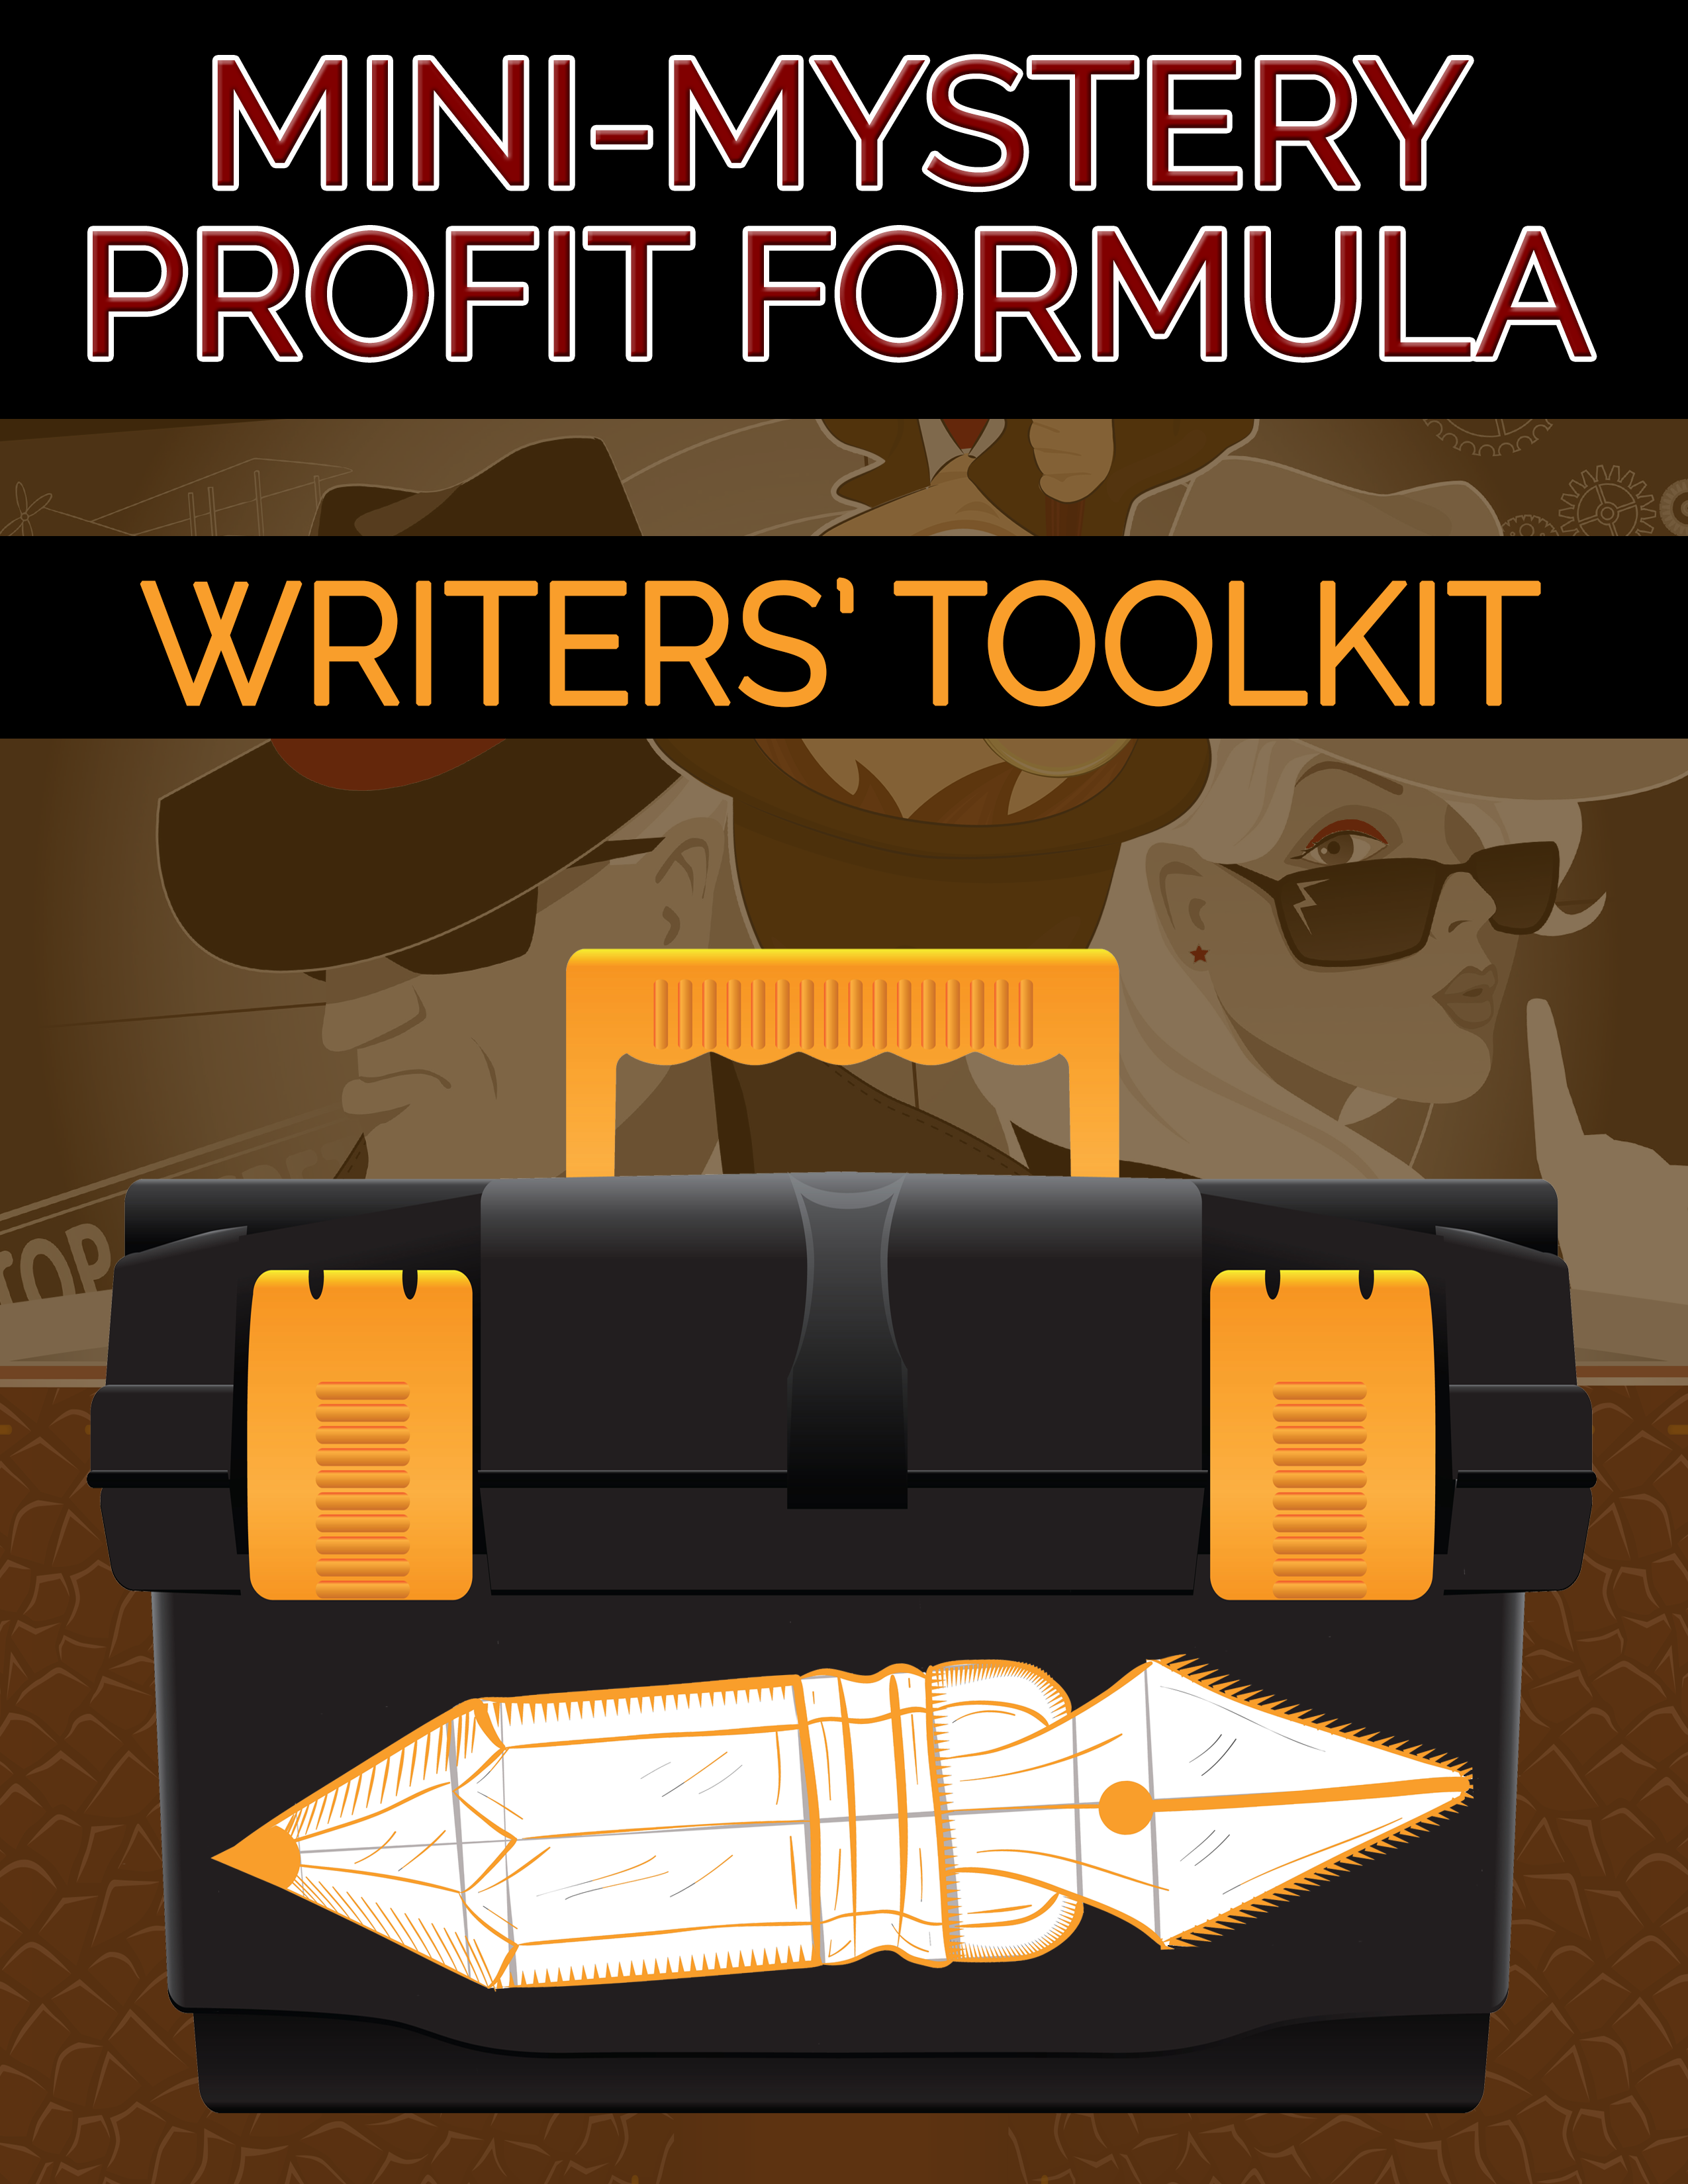 Mini-Mystery Profit Formula Writers' Toolkit by Shawn Hansen